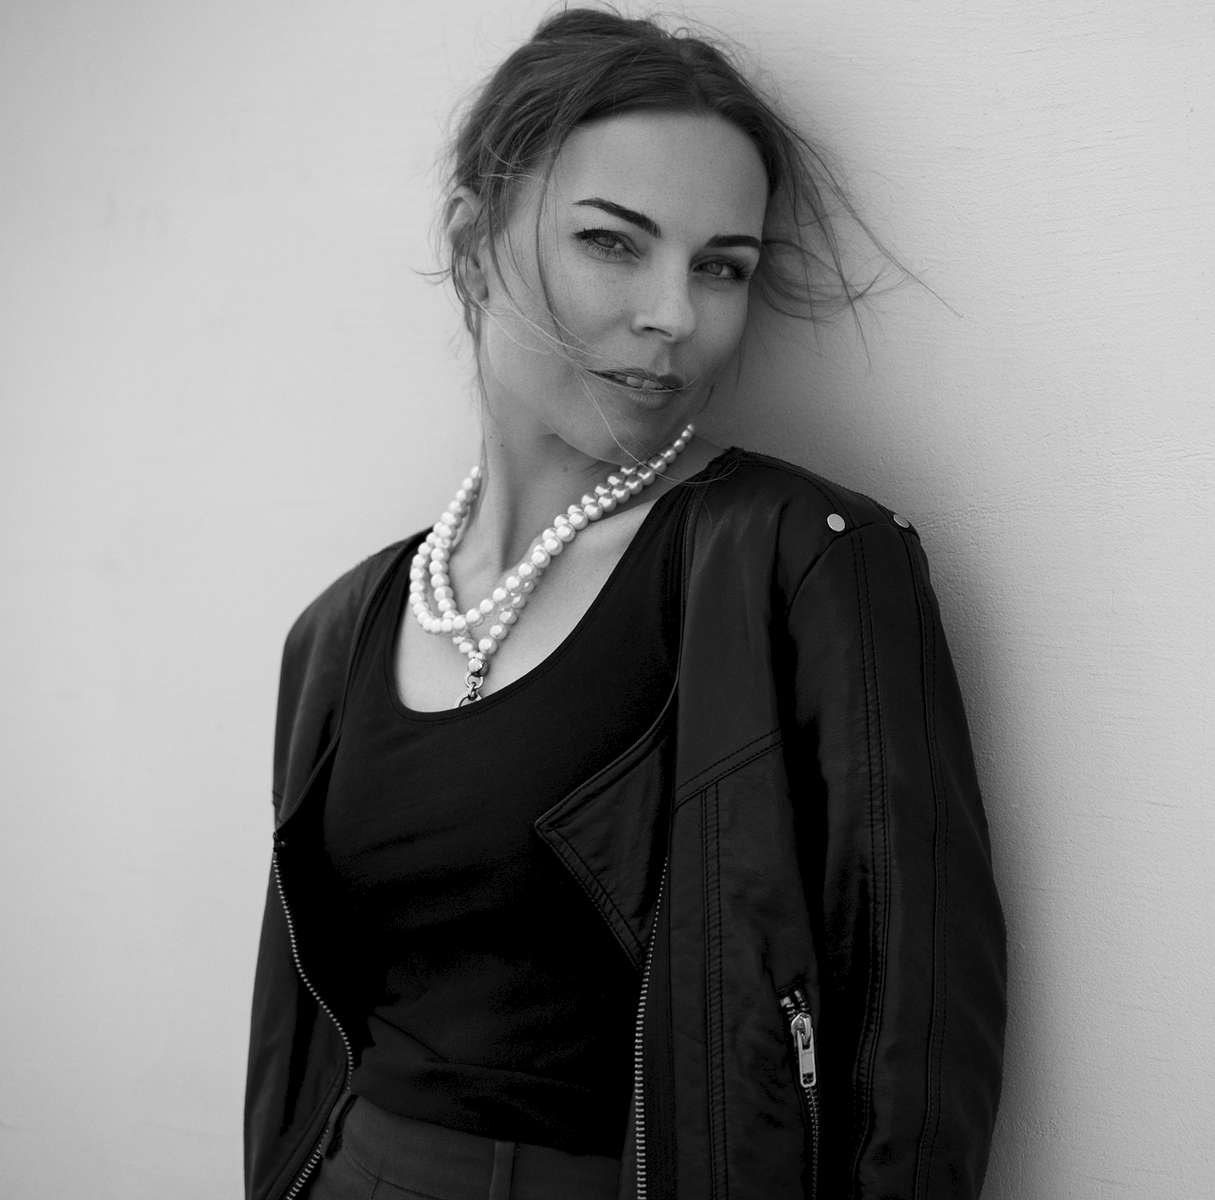 A black and white fashion image of model Ingvill posing against a wall wearing a black jacket and white pearls necklace